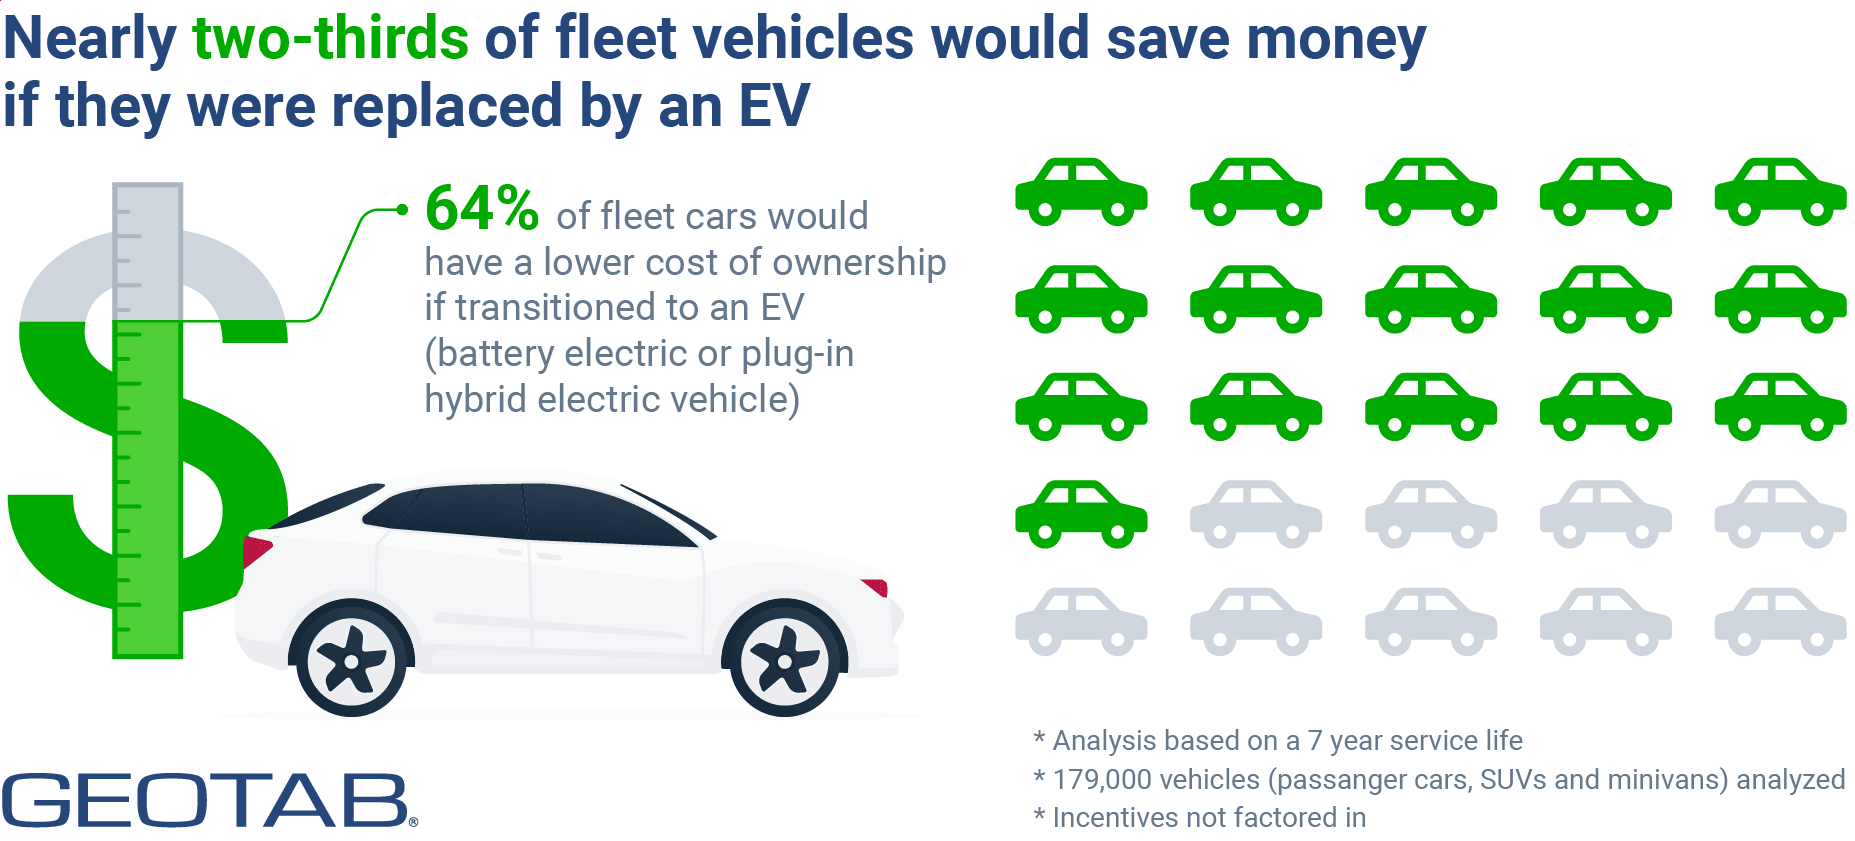 Vehicles that would save money if replaced by an EV